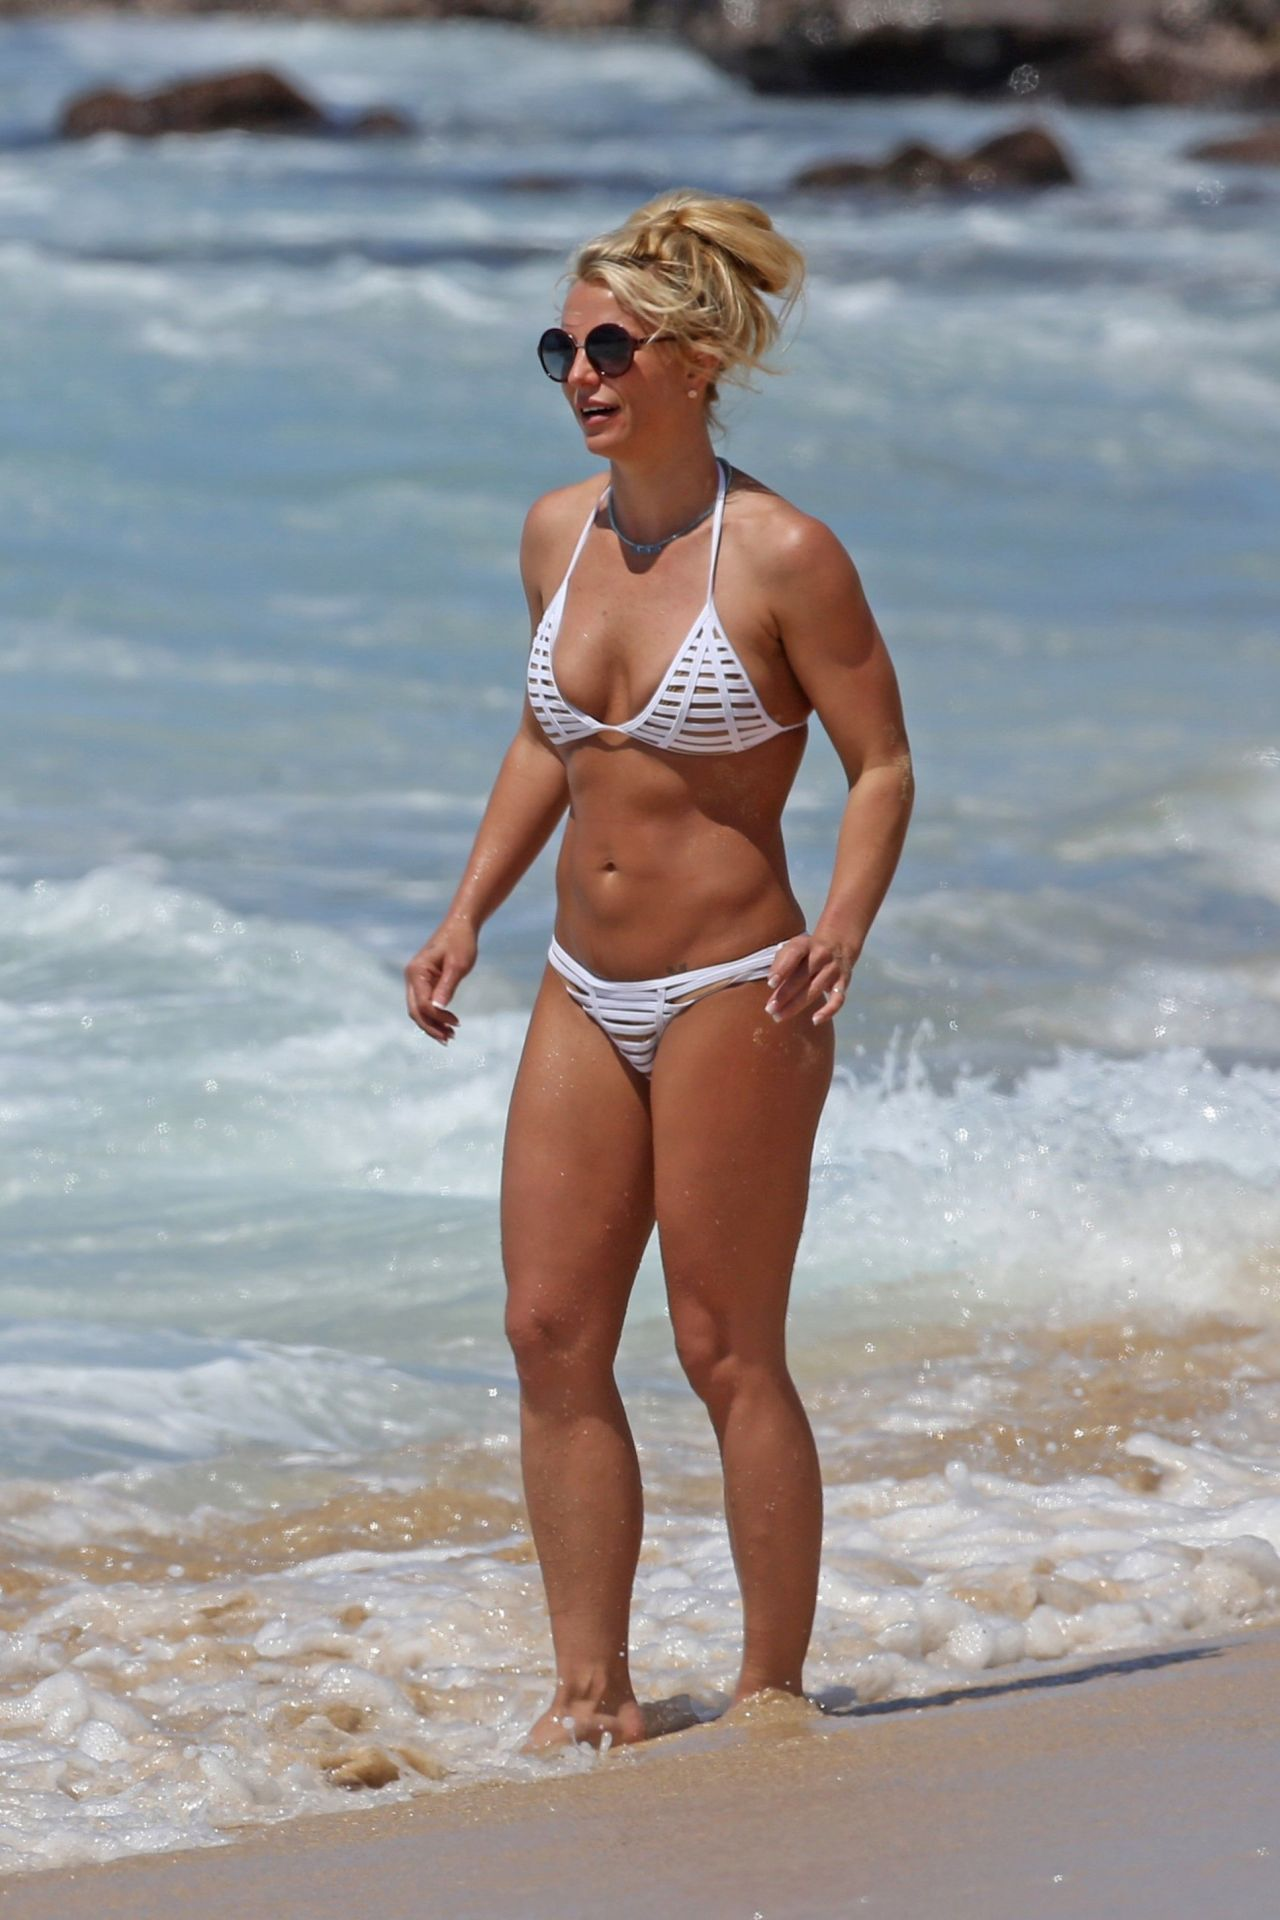 Fakes beach britney spears